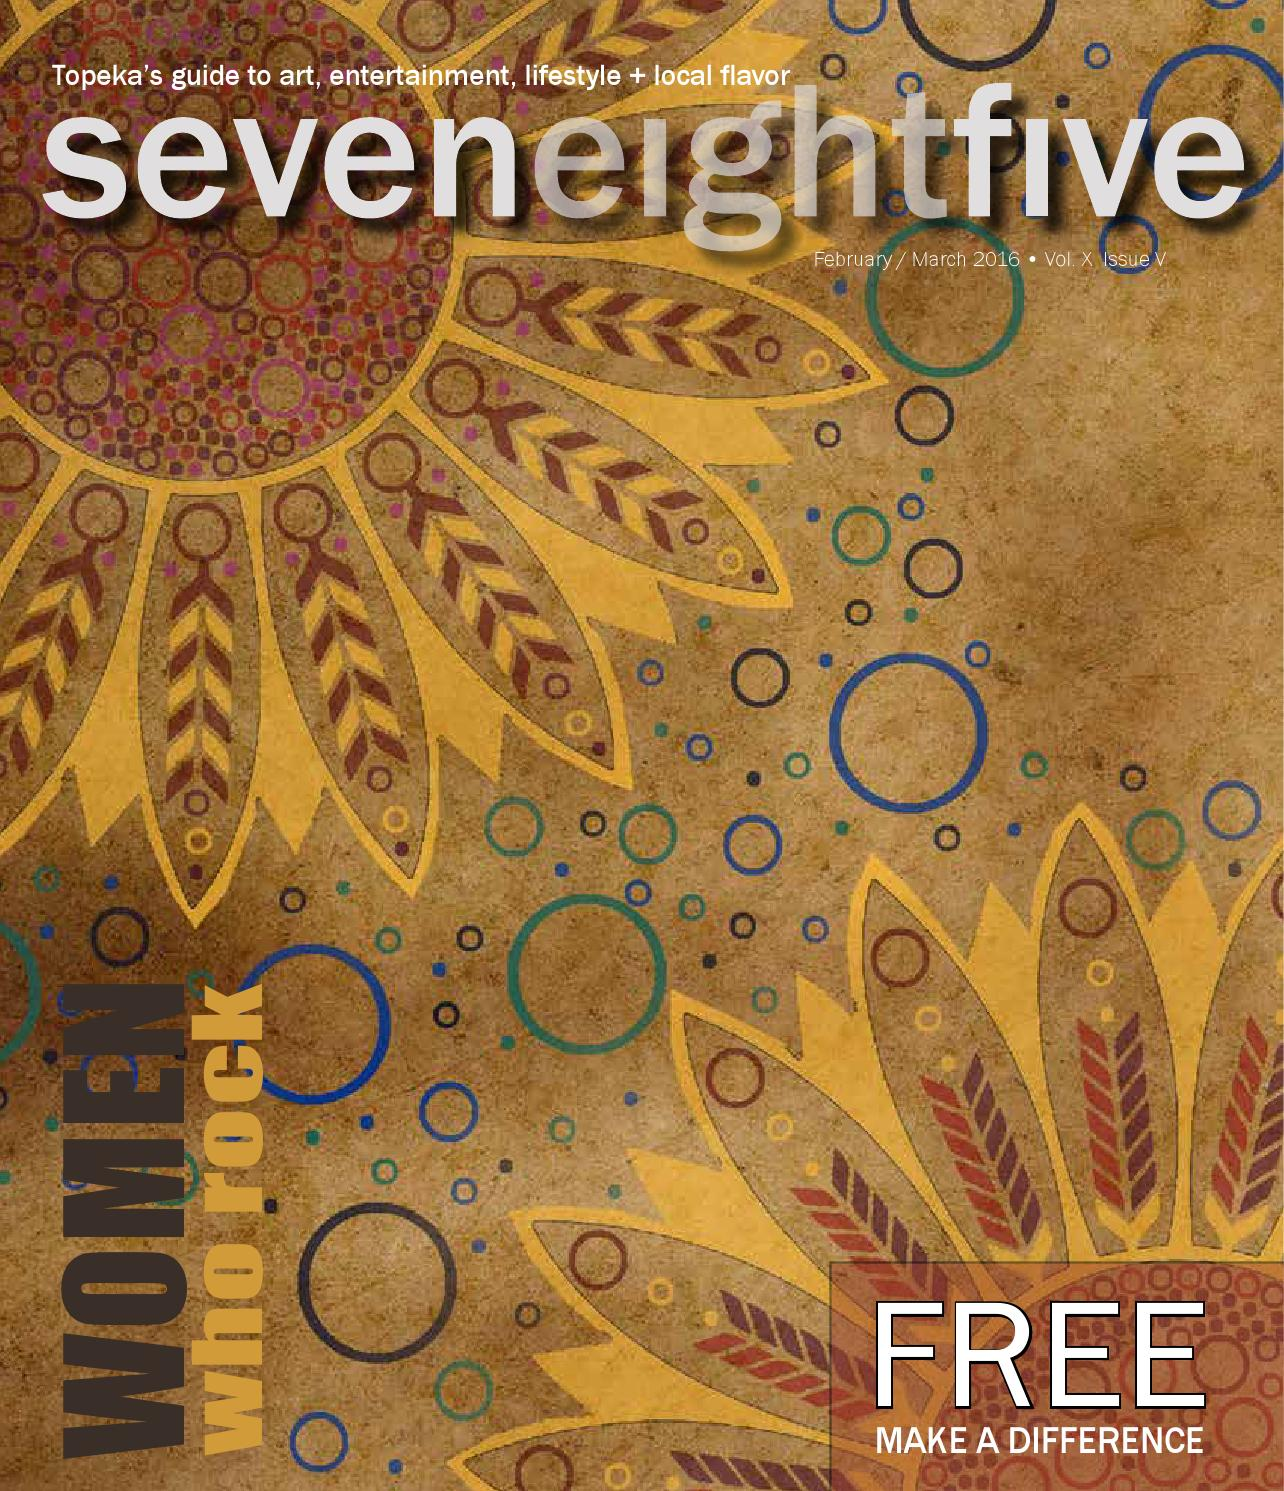 seveneightfive Feb/March 2016 by seveneightfive magazine - issuu